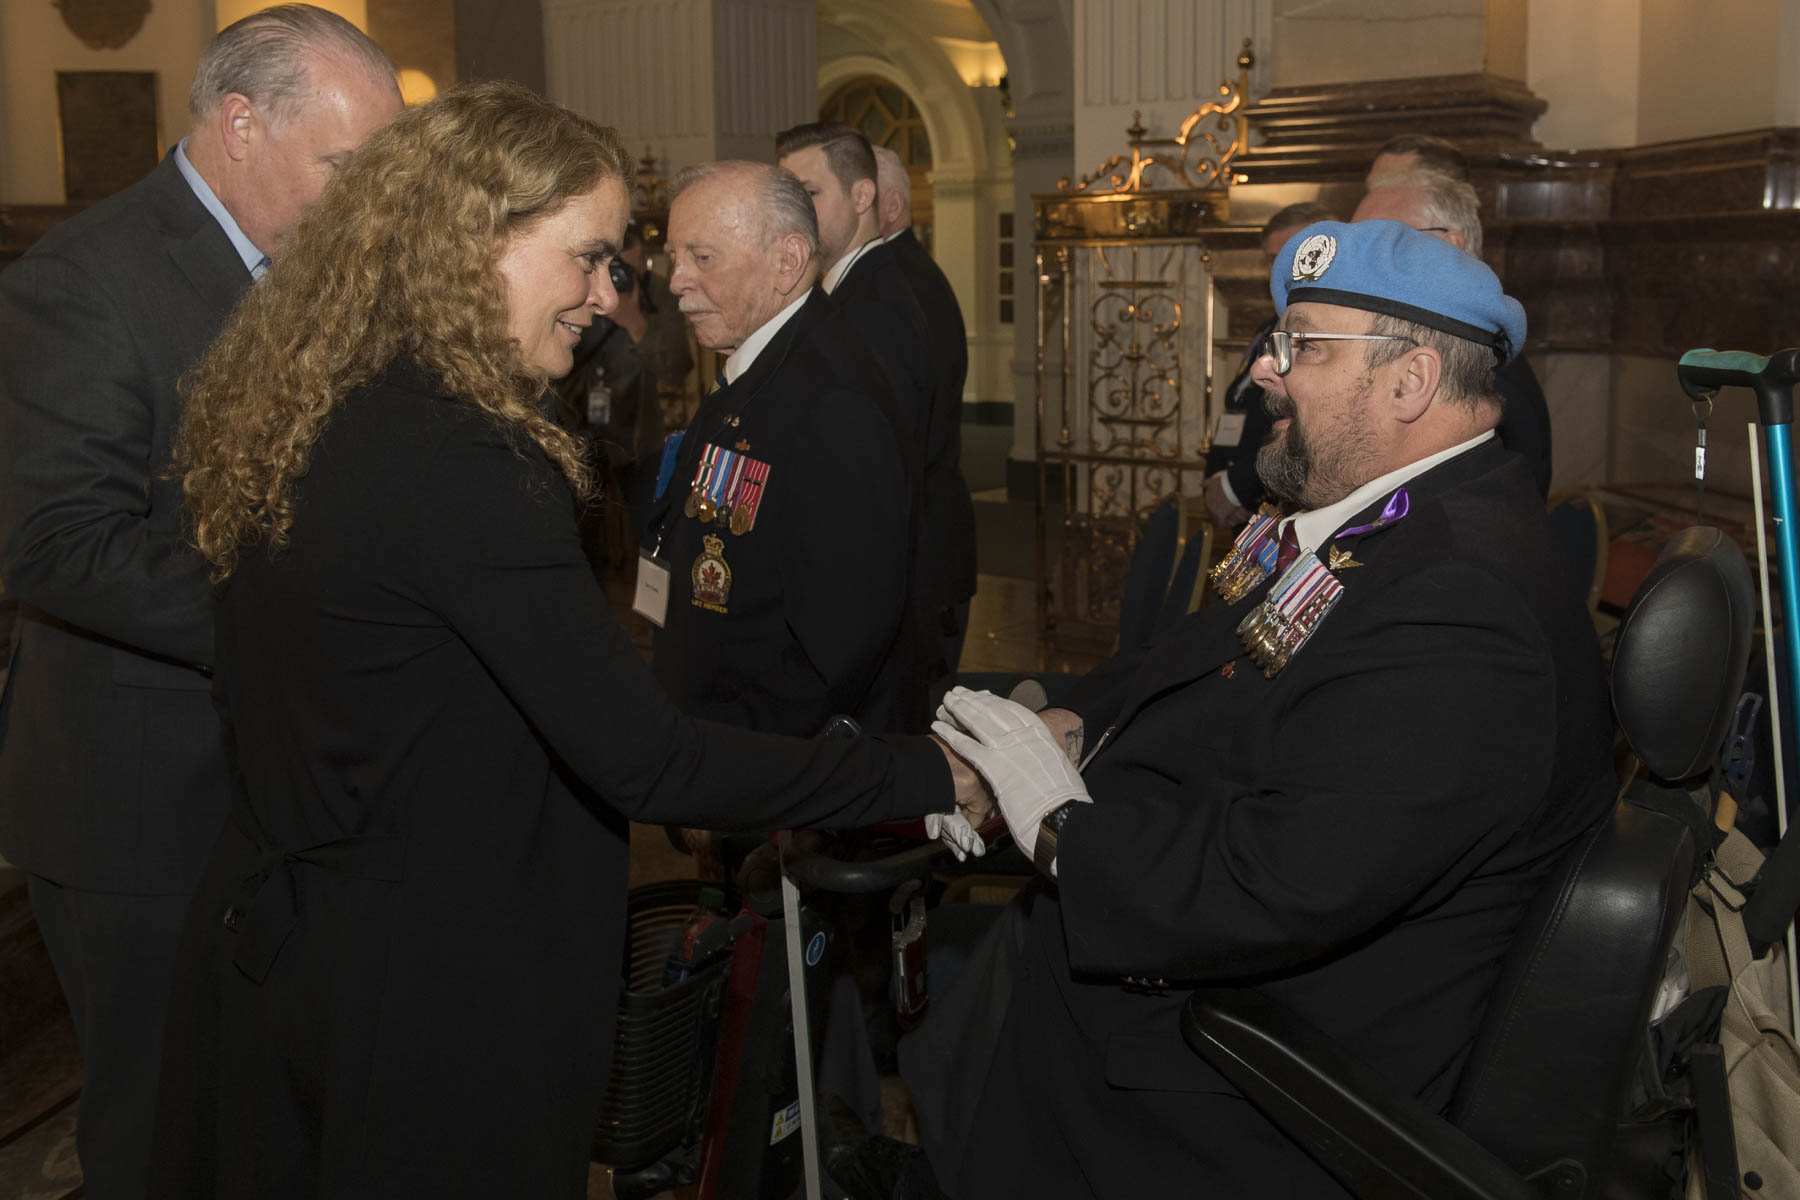 Prior to her meeting with the Premier, Her Excellency met with veterans.